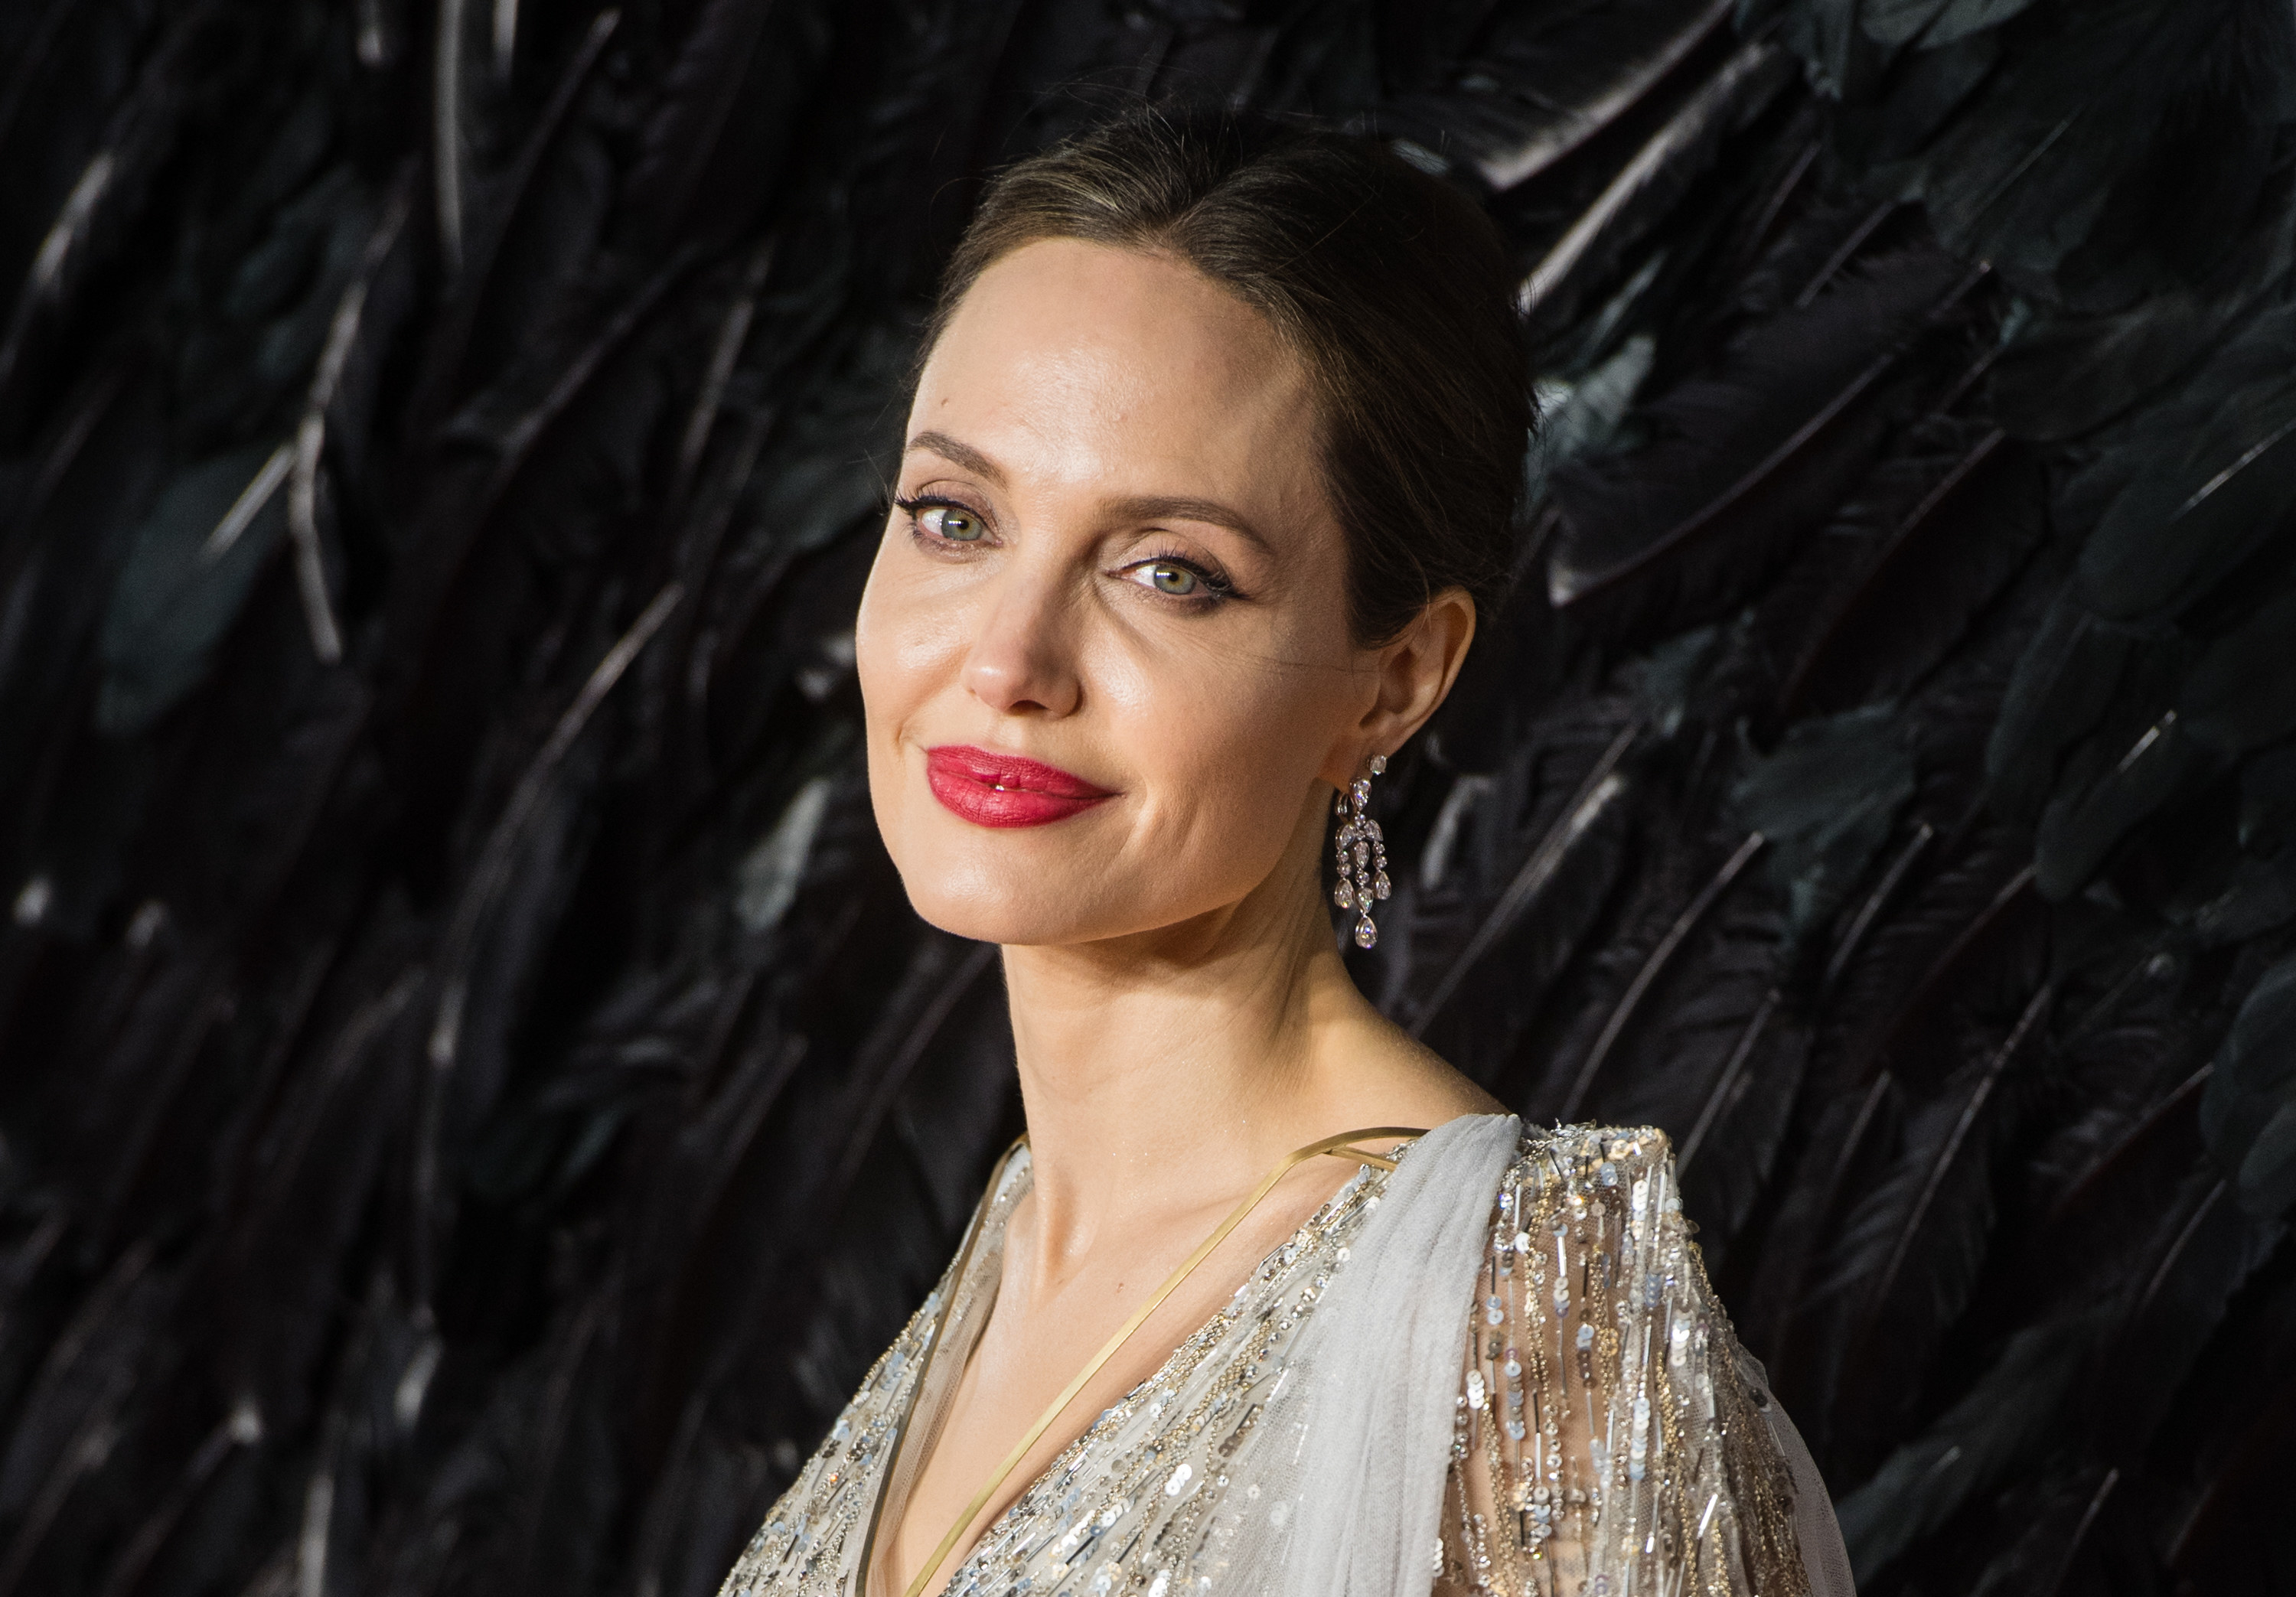 Angelina smiles on a red carpet